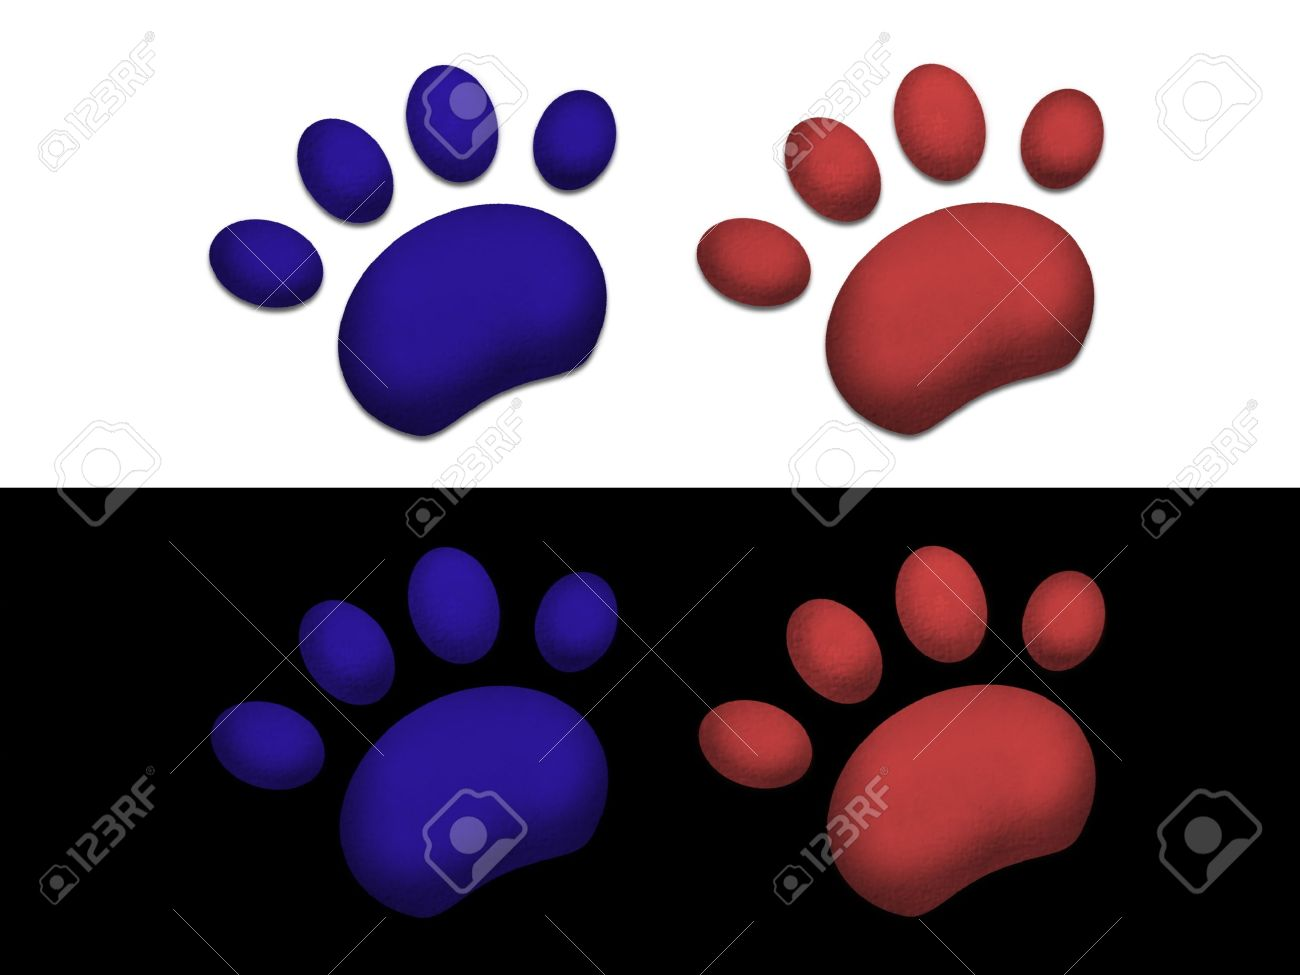 illustration of Paw prints on black and white background Stock Photo - 6894756